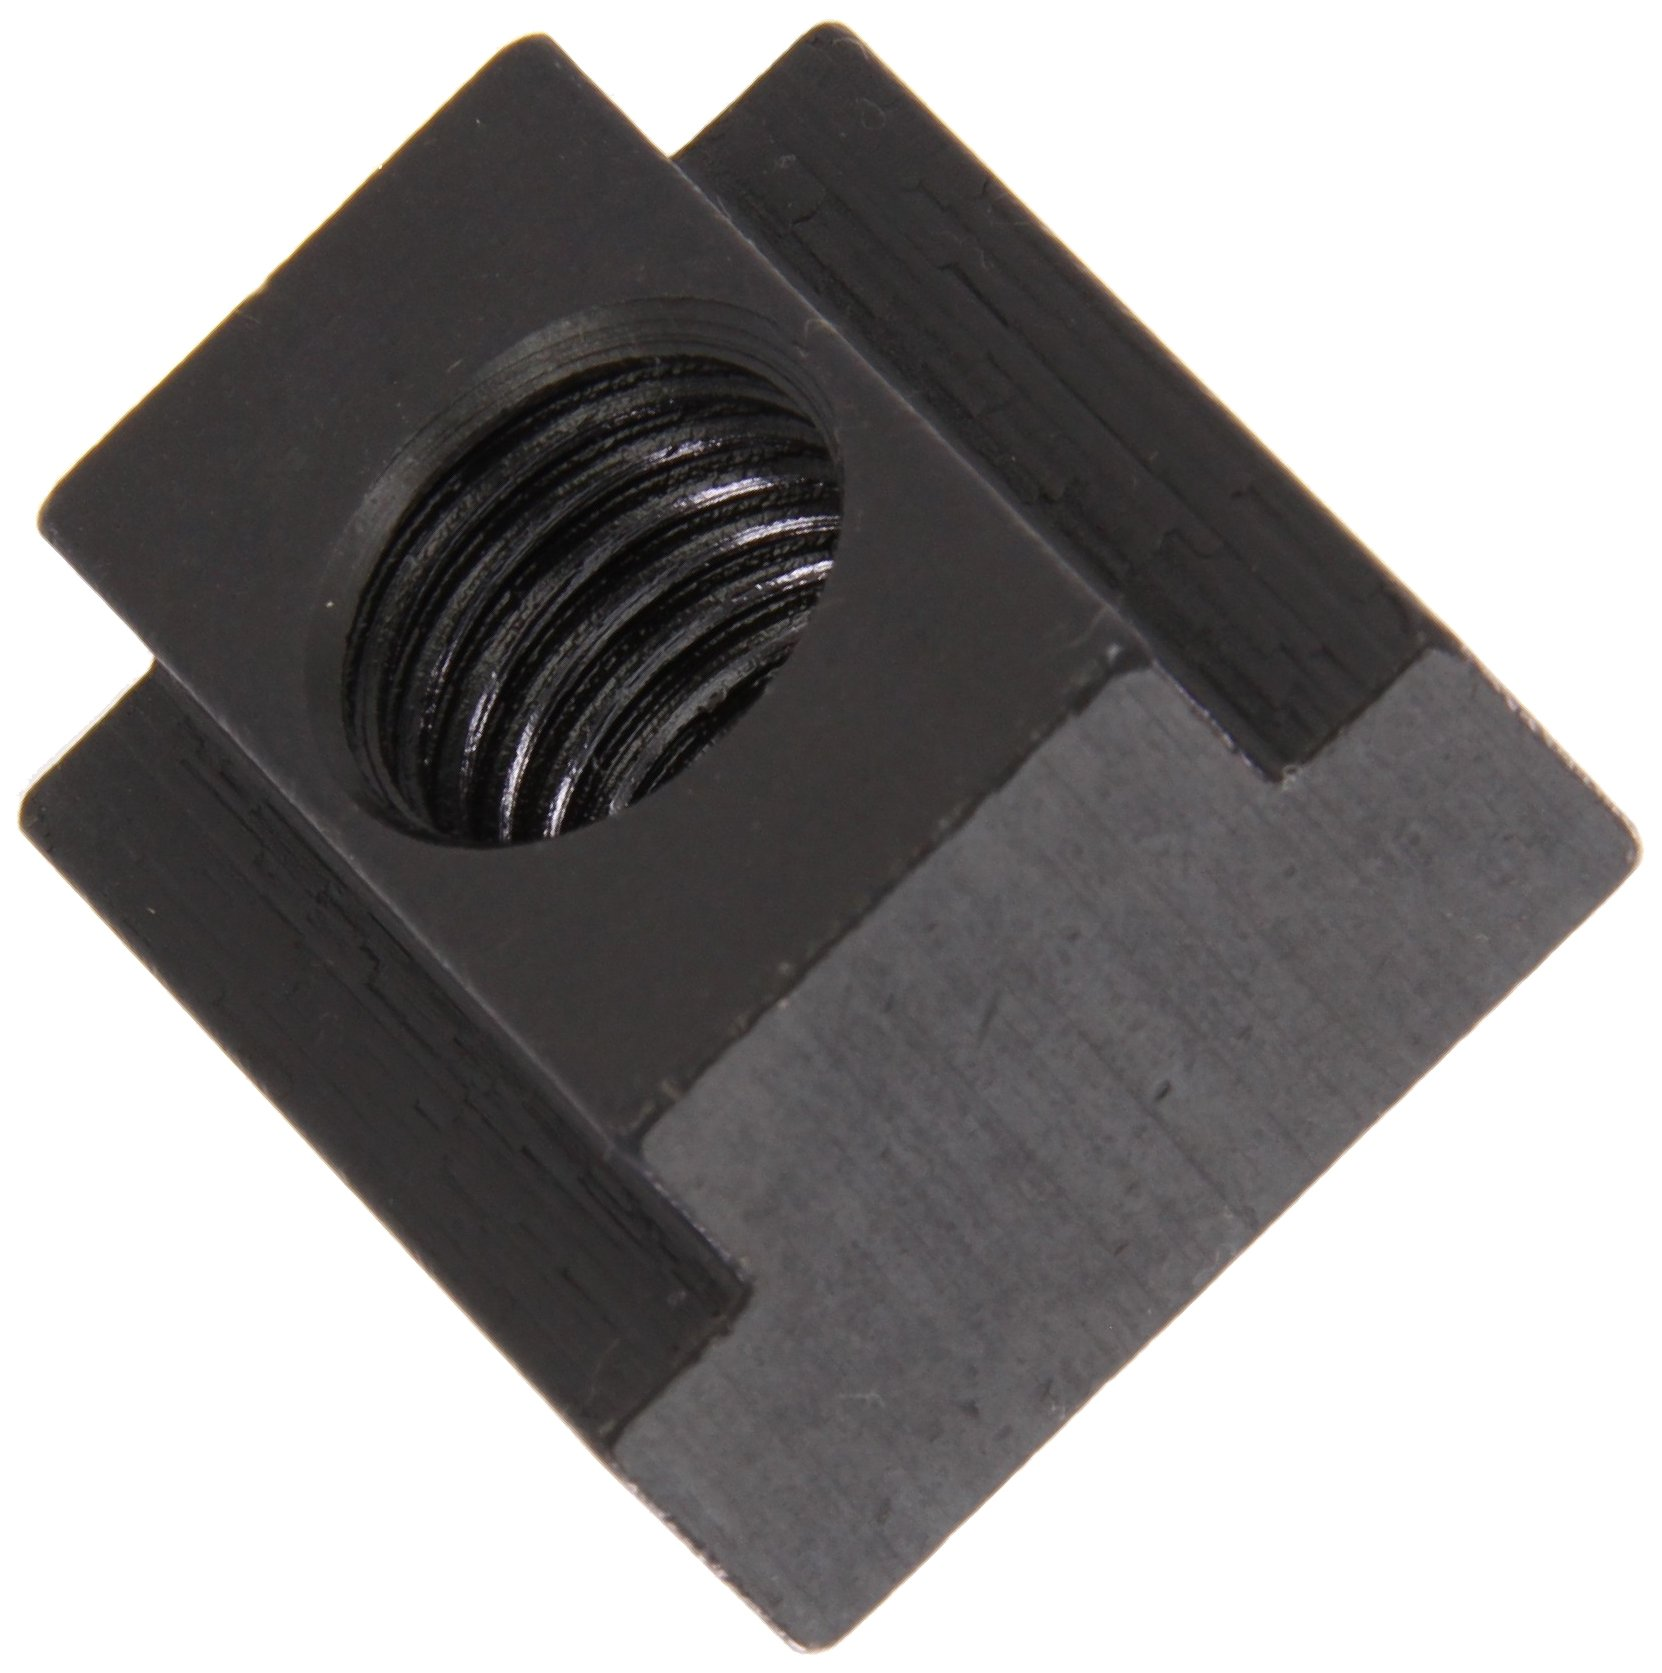 1018 Steel T-Slot Nut, Black Oxide Finish, Grade 2, 1/2''-13 Threads, 3/4'' Height, 11/16'' Slot Depth, Made in US (Pack of 5)